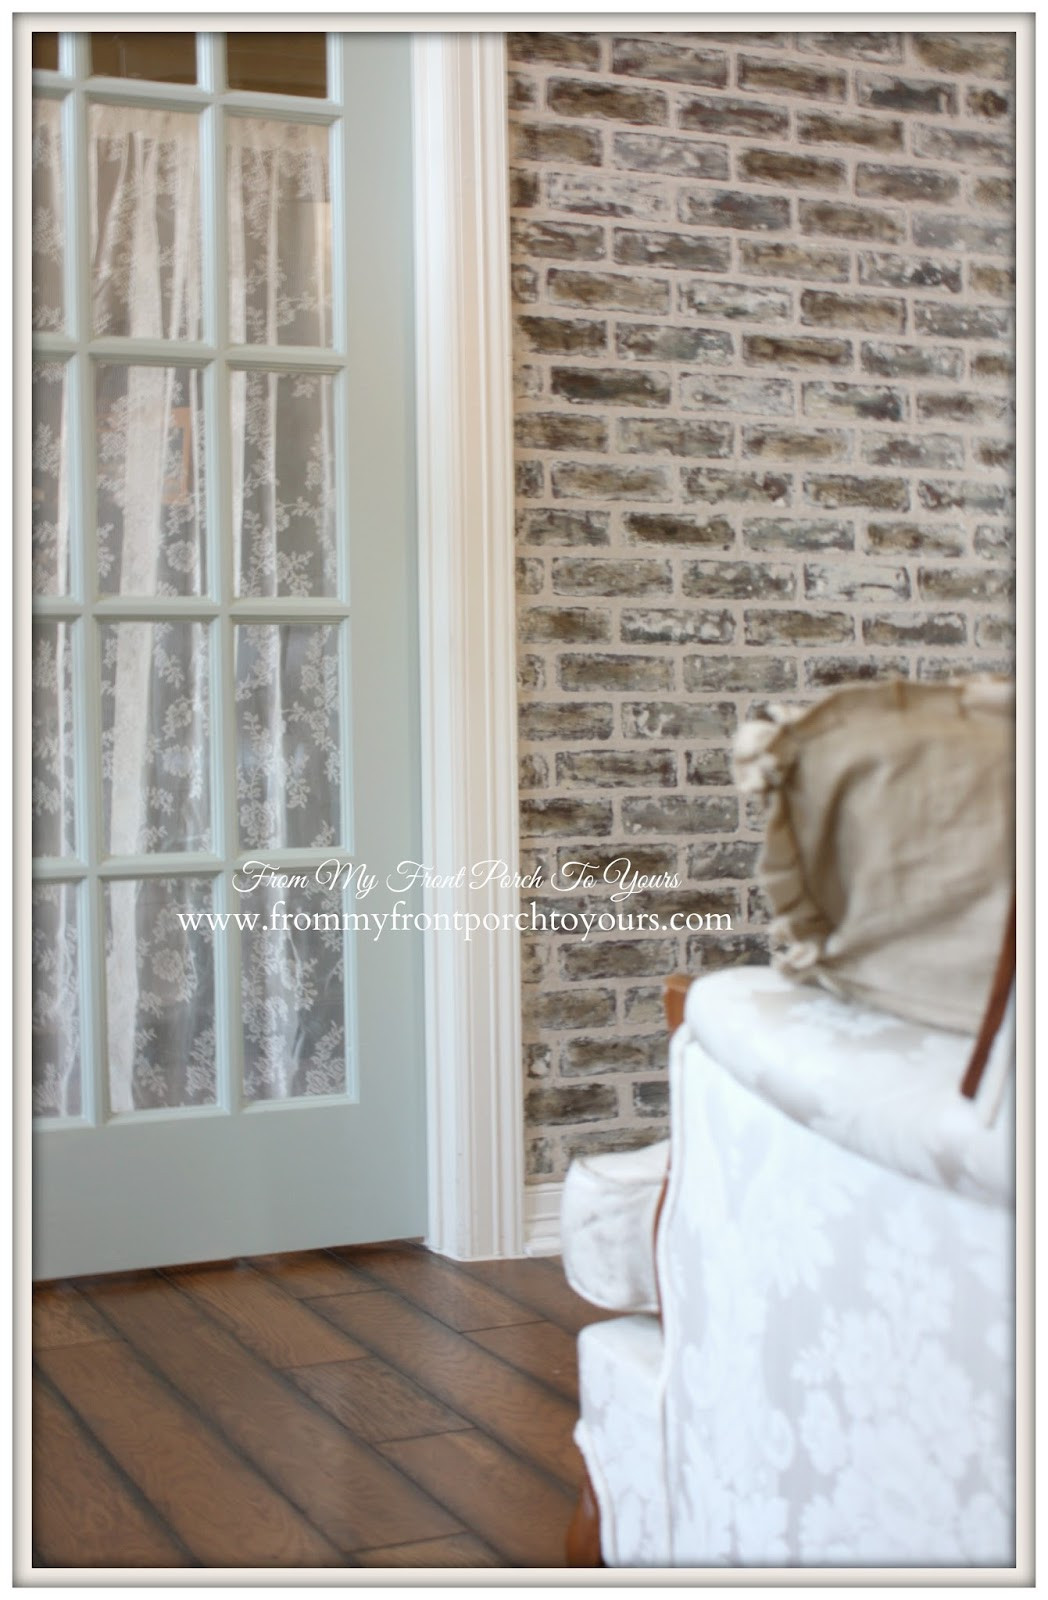 Best ideas about Faux Brick Wall DIY . Save or Pin From My Front Porch To Yours DIY Faux Brick Wall Reveal Now.